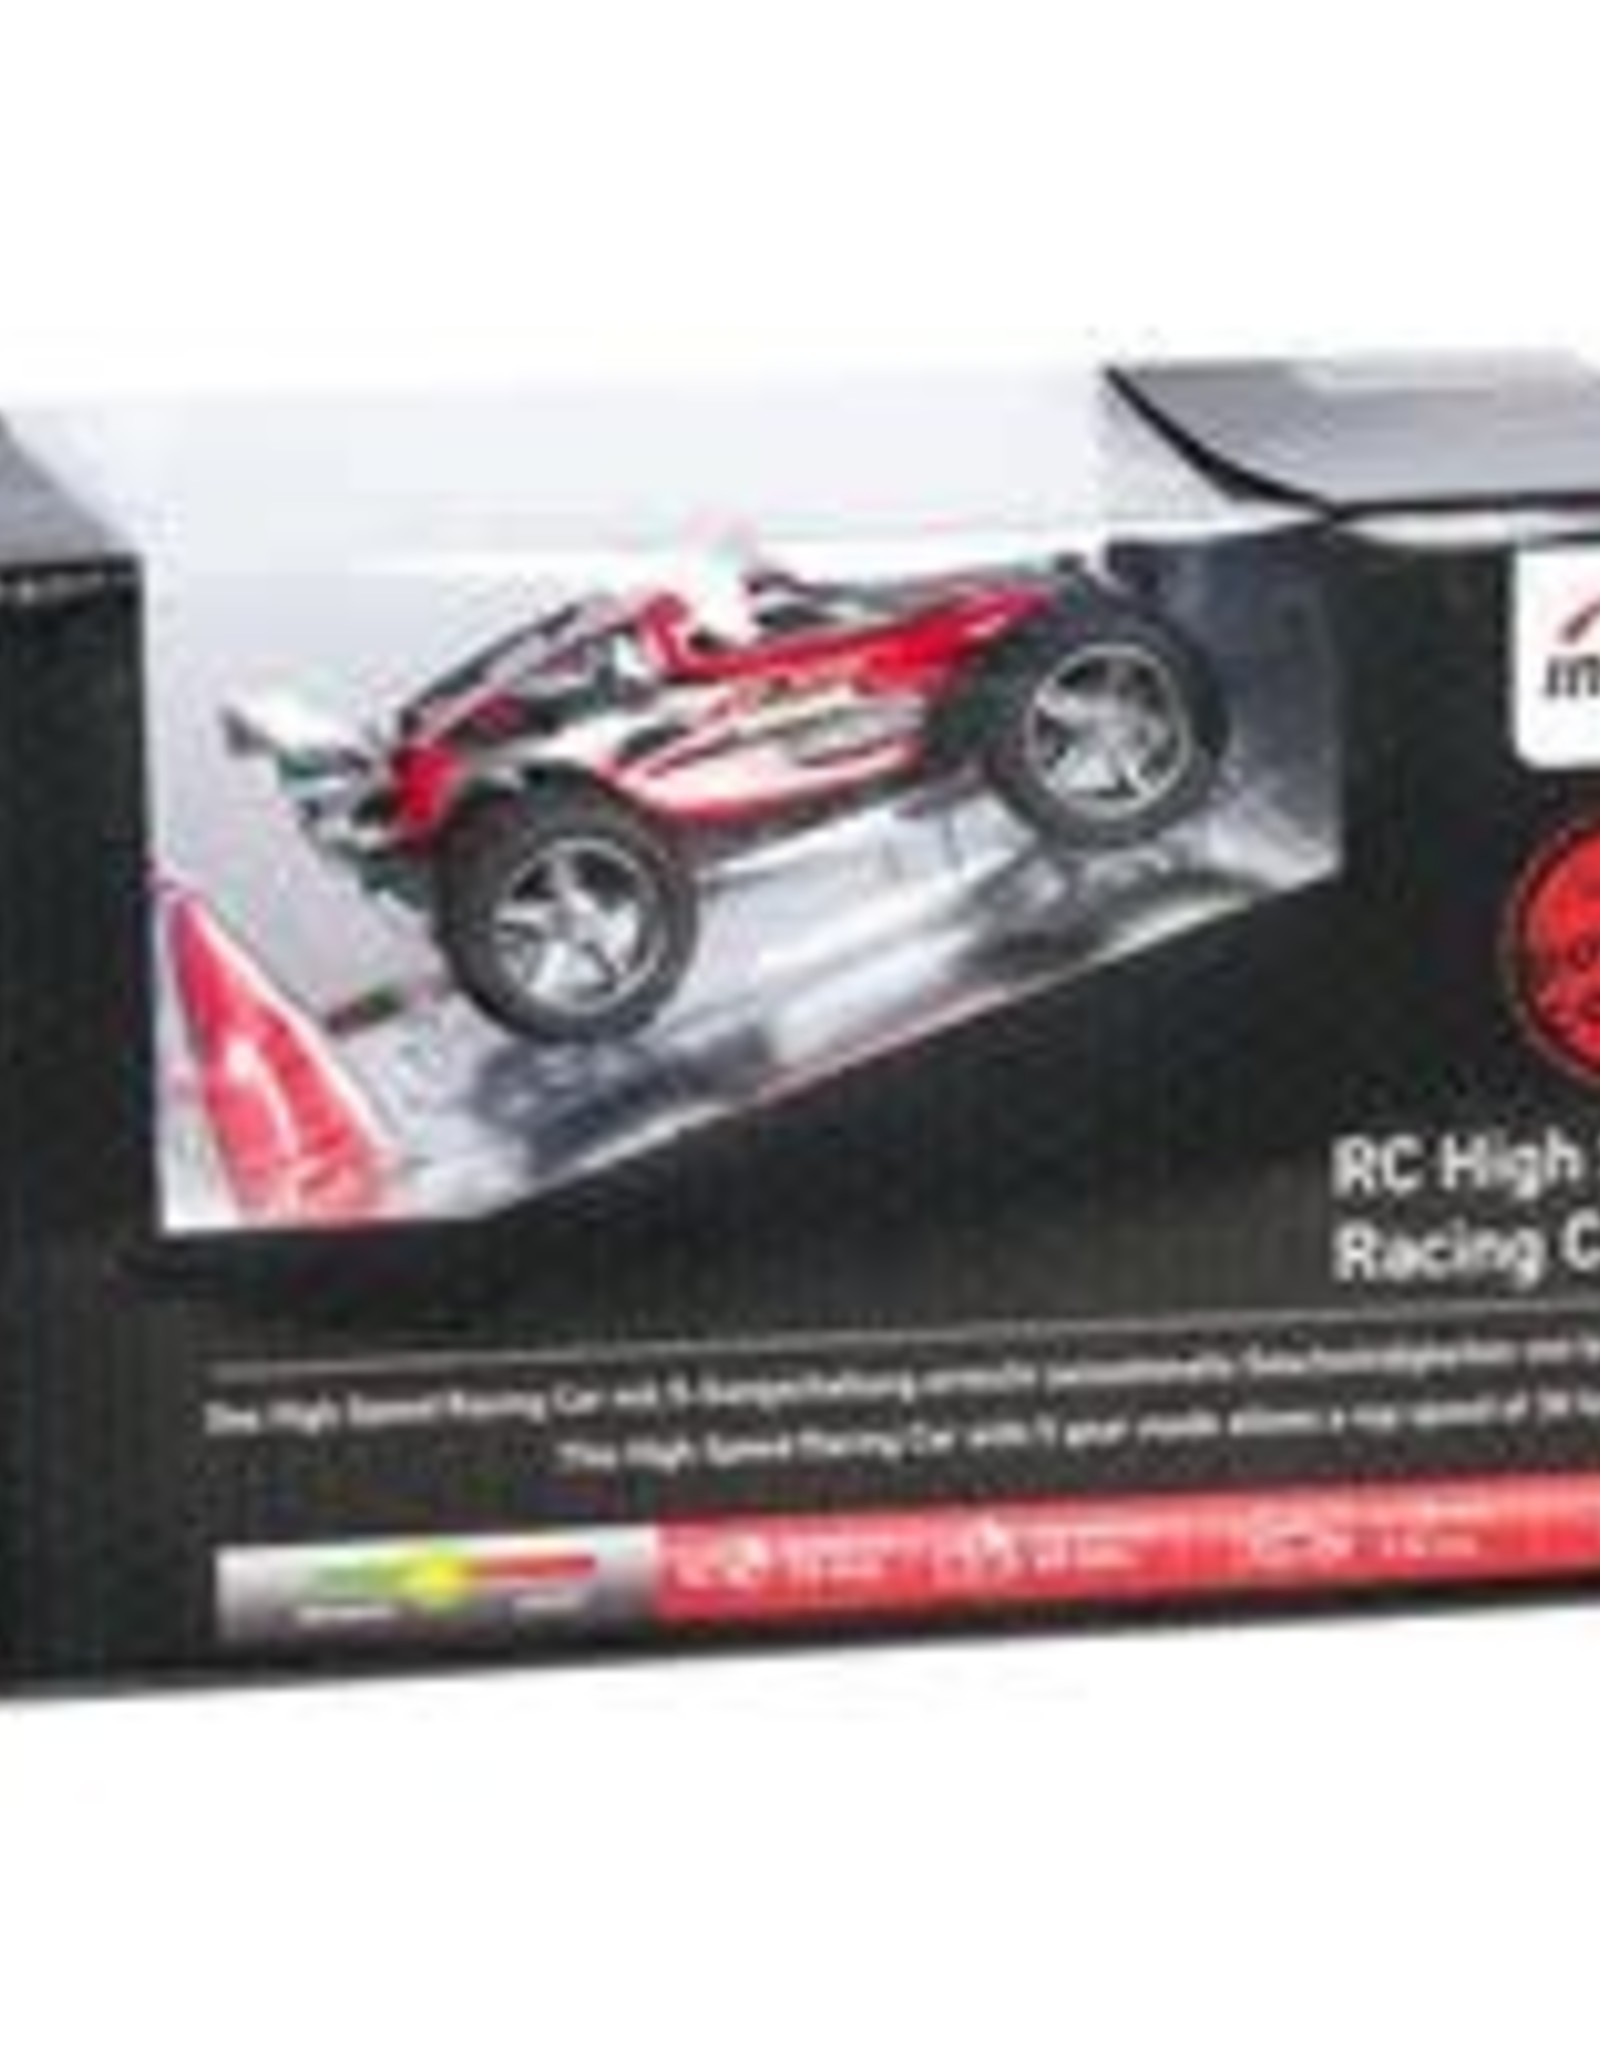 Invento HQ Kites & Designs Invento R/C High Speed Racing Car Assortment